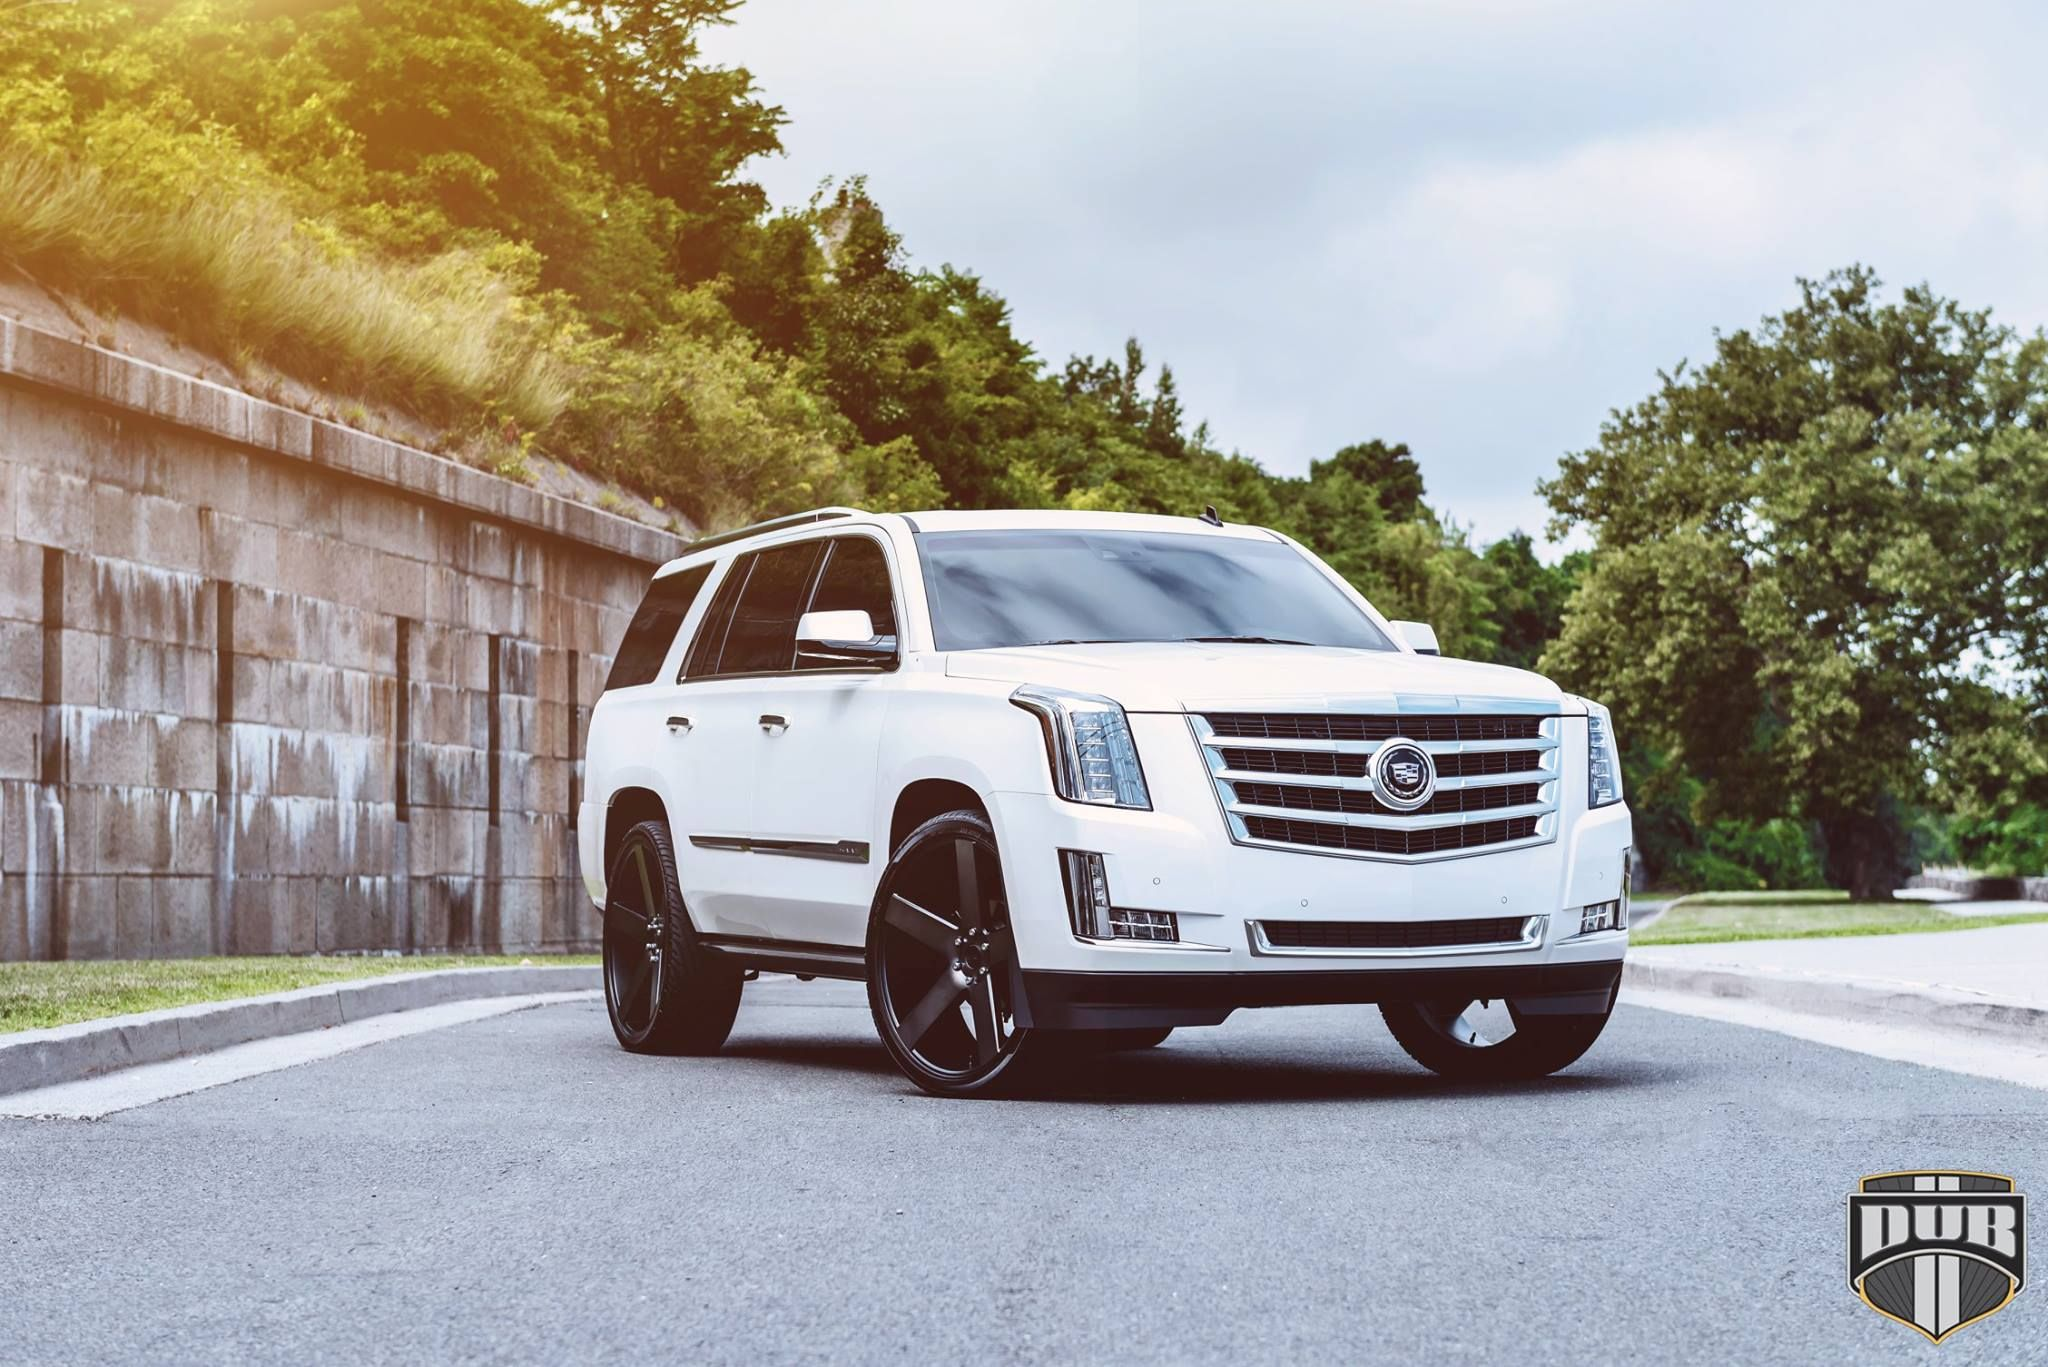 Cadillac On 26 Inch Rims : Red escalade with inch rims imgkid the